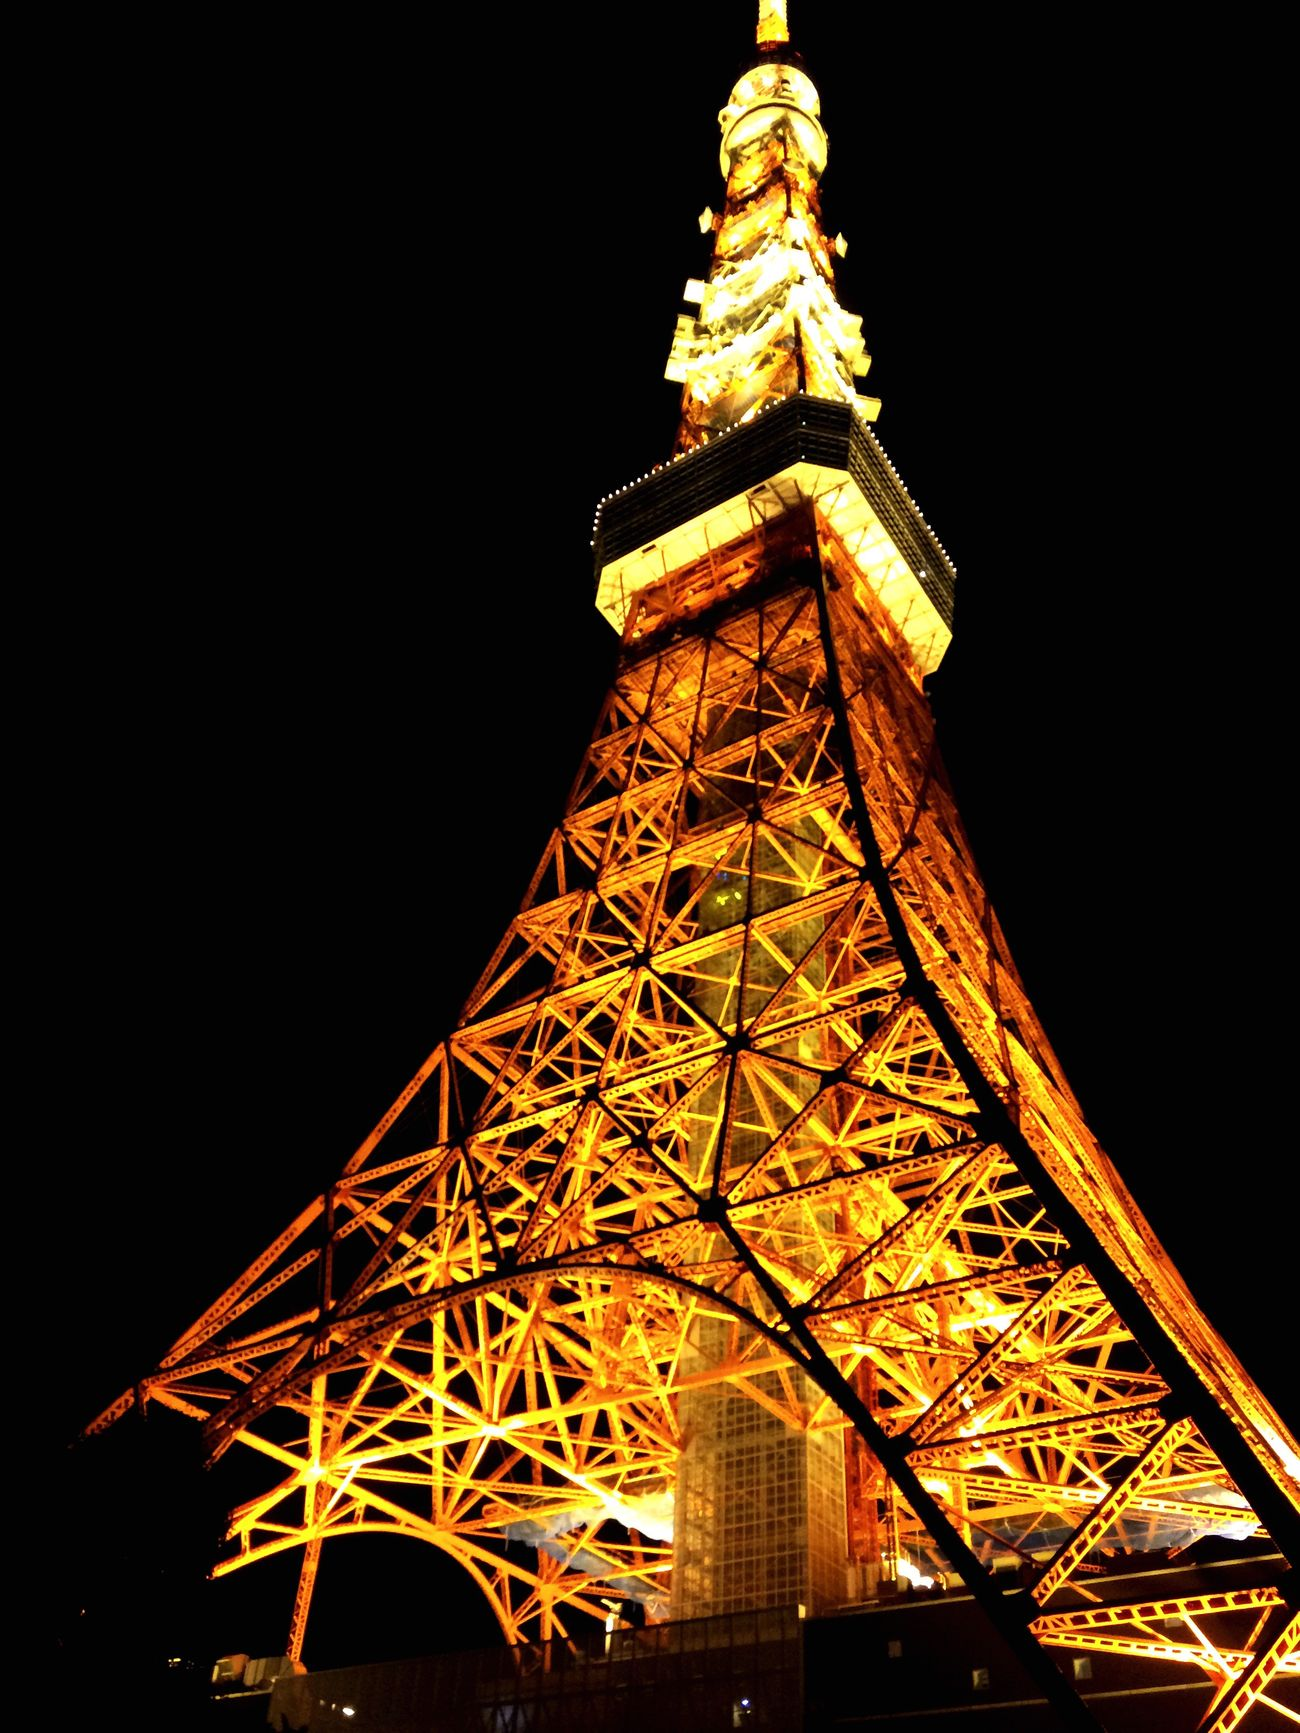 Tower Architecture Low Angle View Built Structure Night Illuminated Sky Architecture View Light And Shadow Light 東京タワー Tokyo 😚 Japan やっぱり、このアングルが好きだ